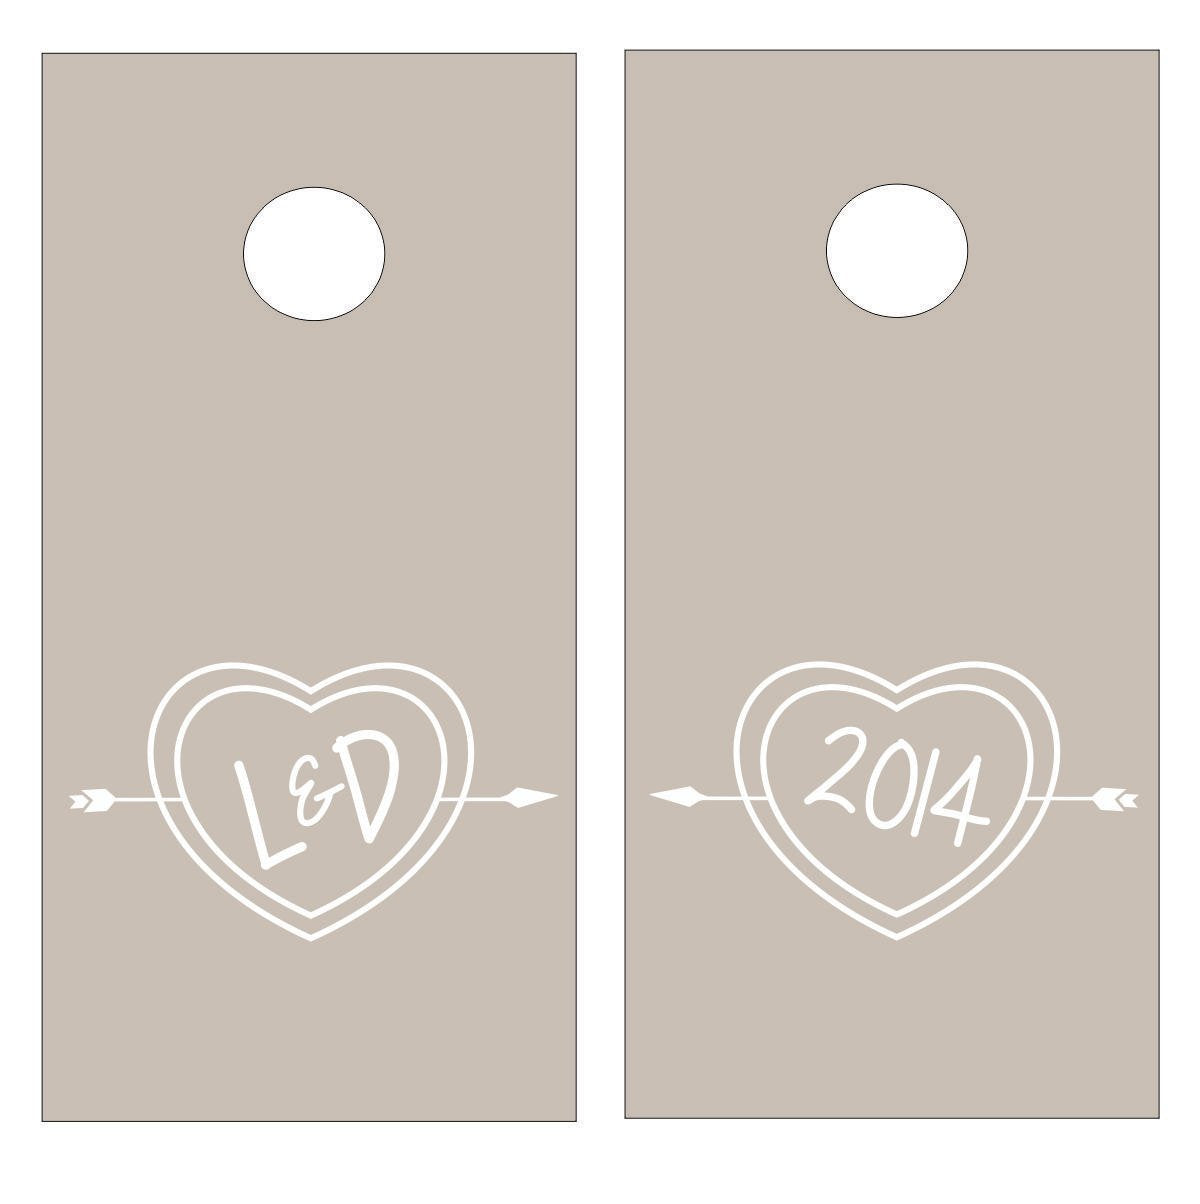 Carved Heart Bride & Groom Initials with Wedding Date Vinyl Decal Set for Cornhole Game Boards